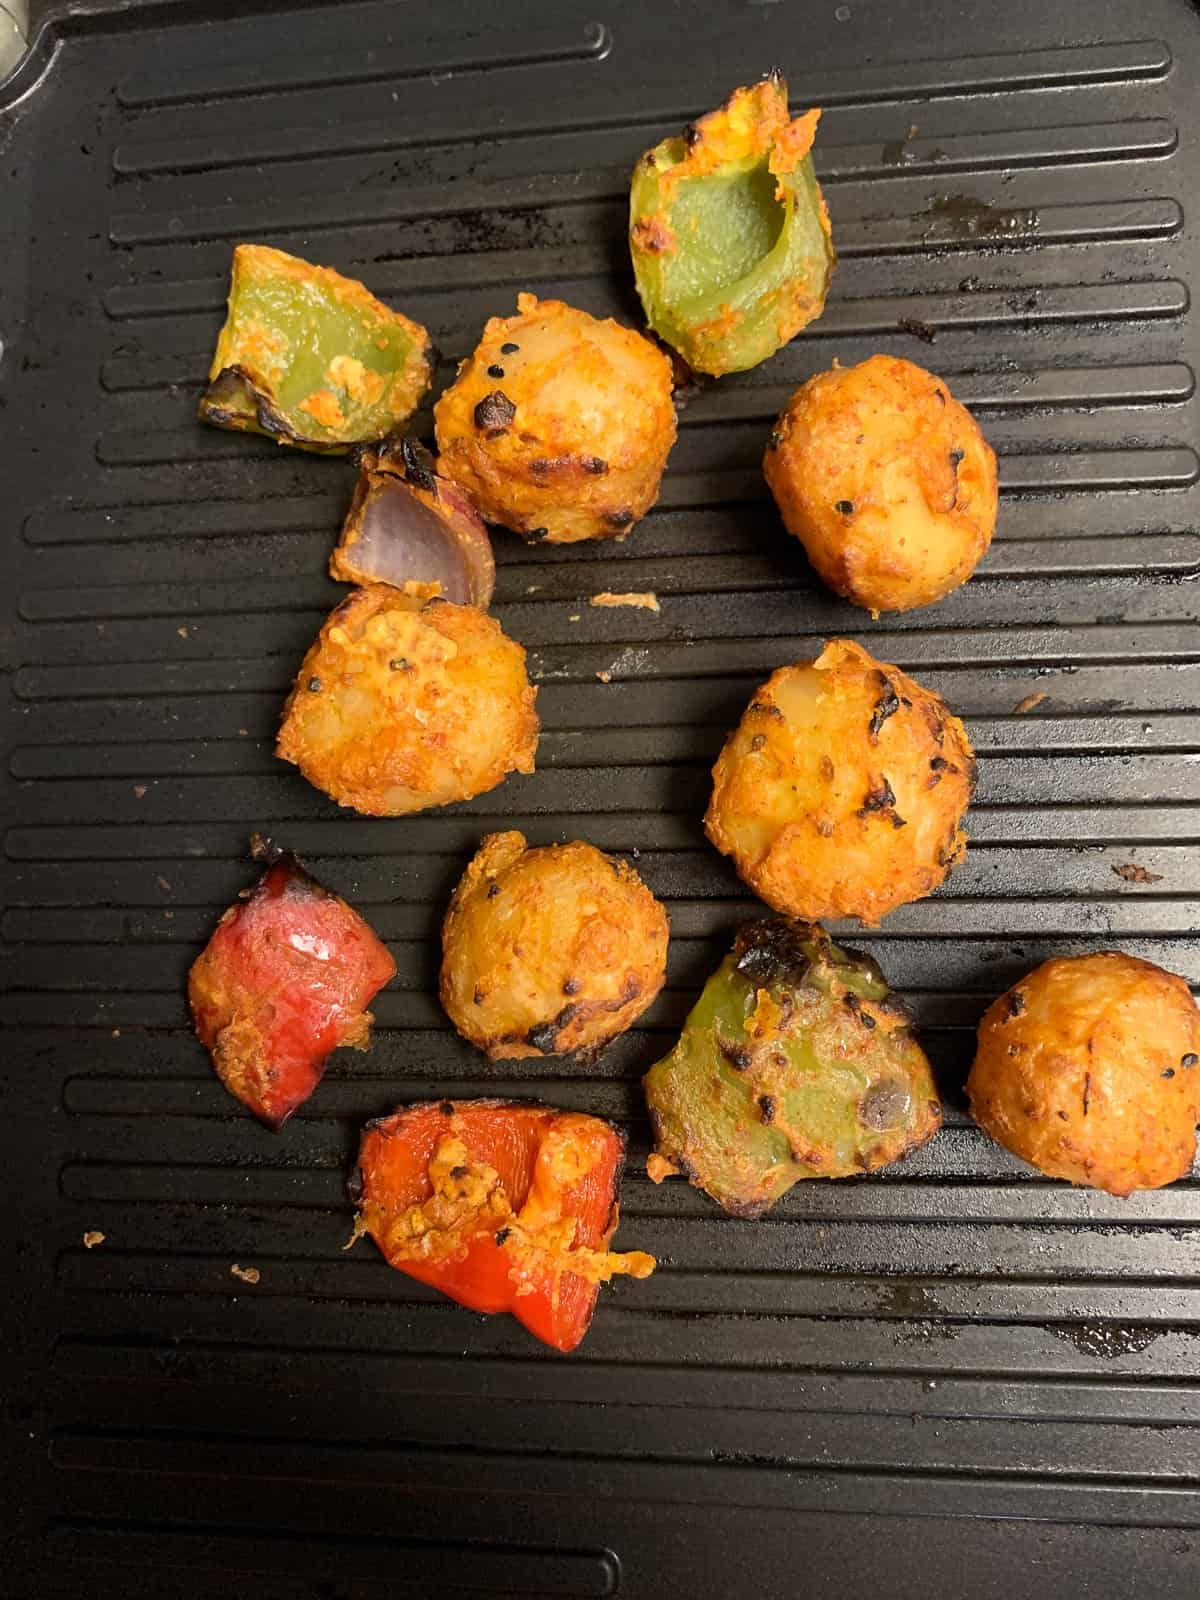 Grilling potatoes and peppers